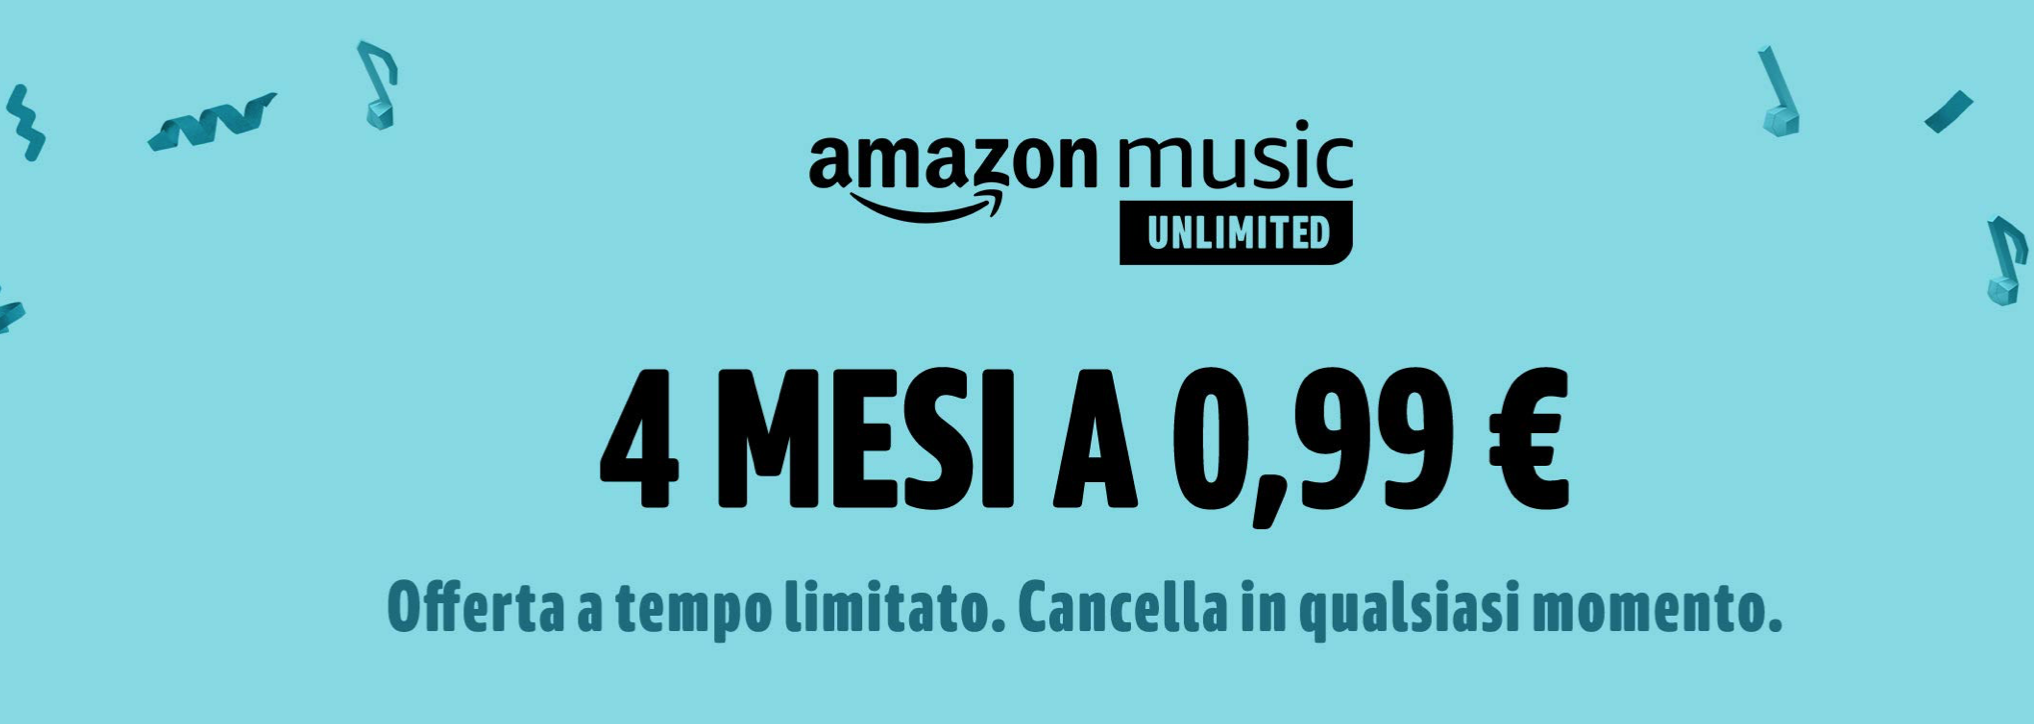 Amazon Music Unlimited offerta Prime Day 2019